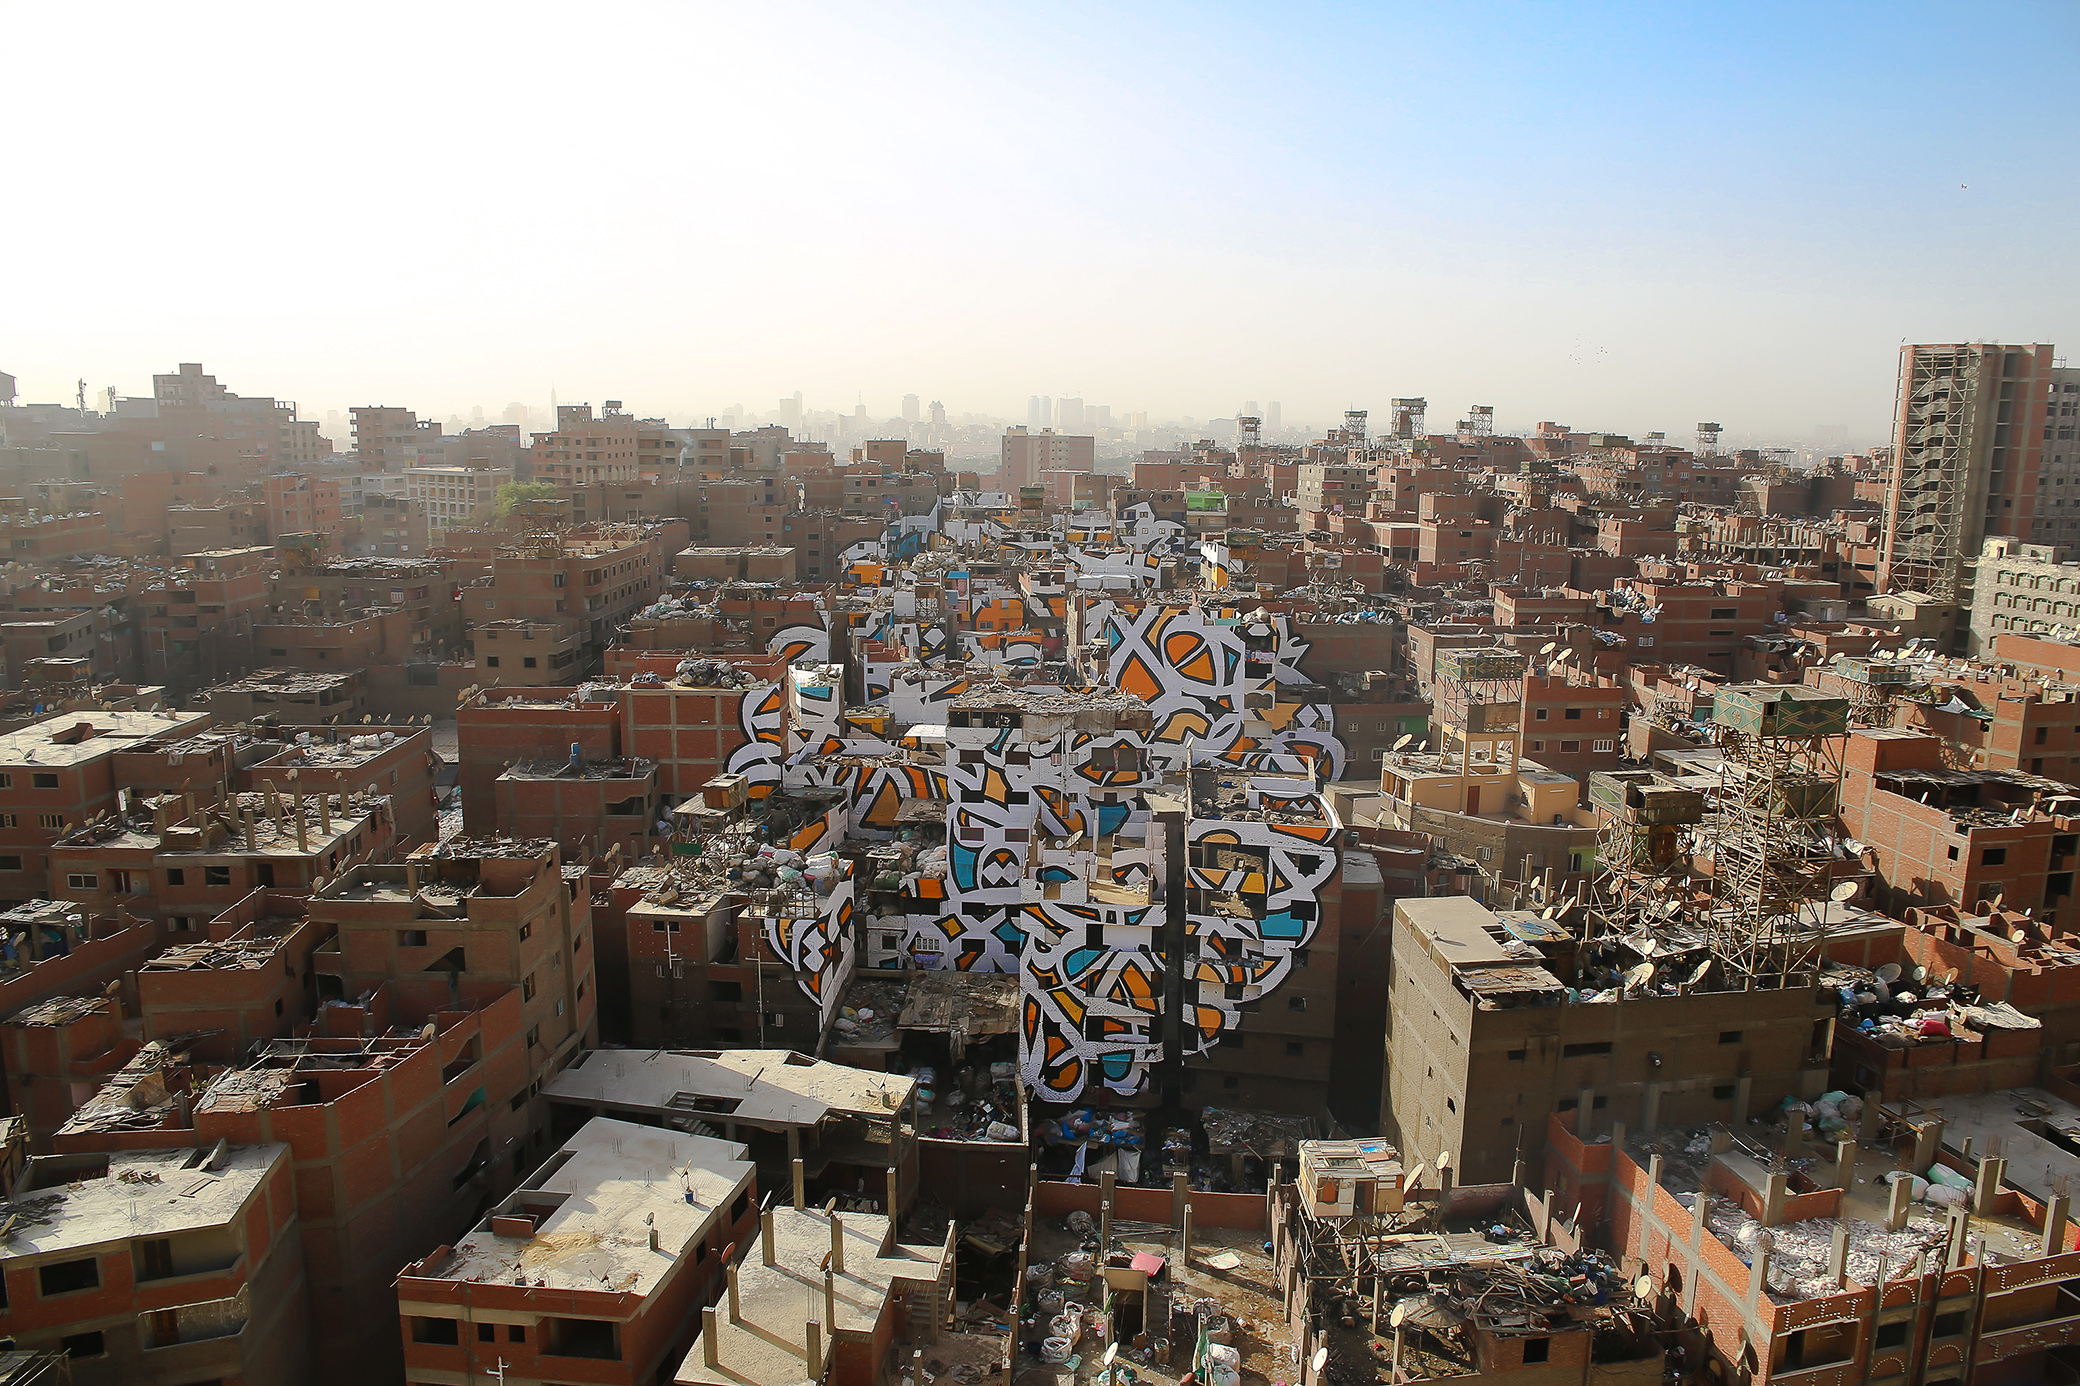 A new mural in Cairo covers more than 40 buildings. The result is stunning.